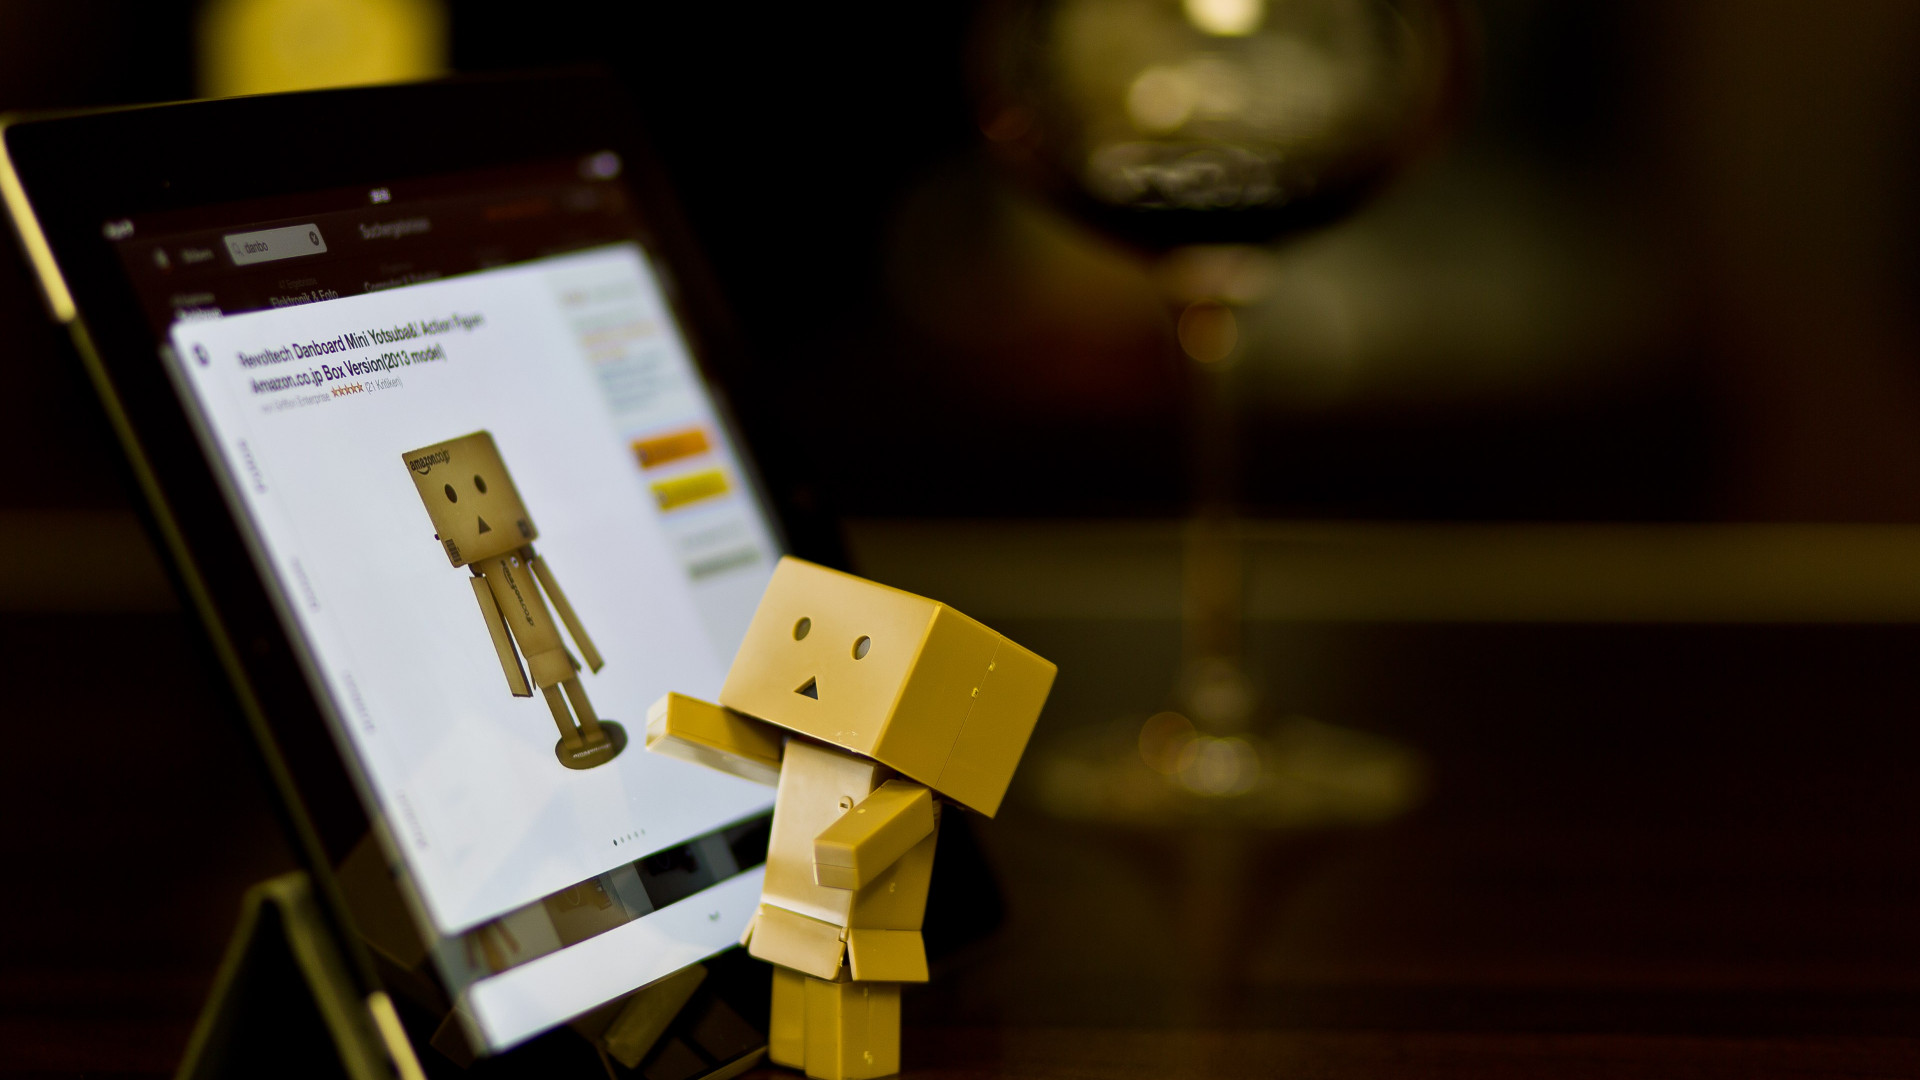 Danbo with tablet wallpaper 1920x1080